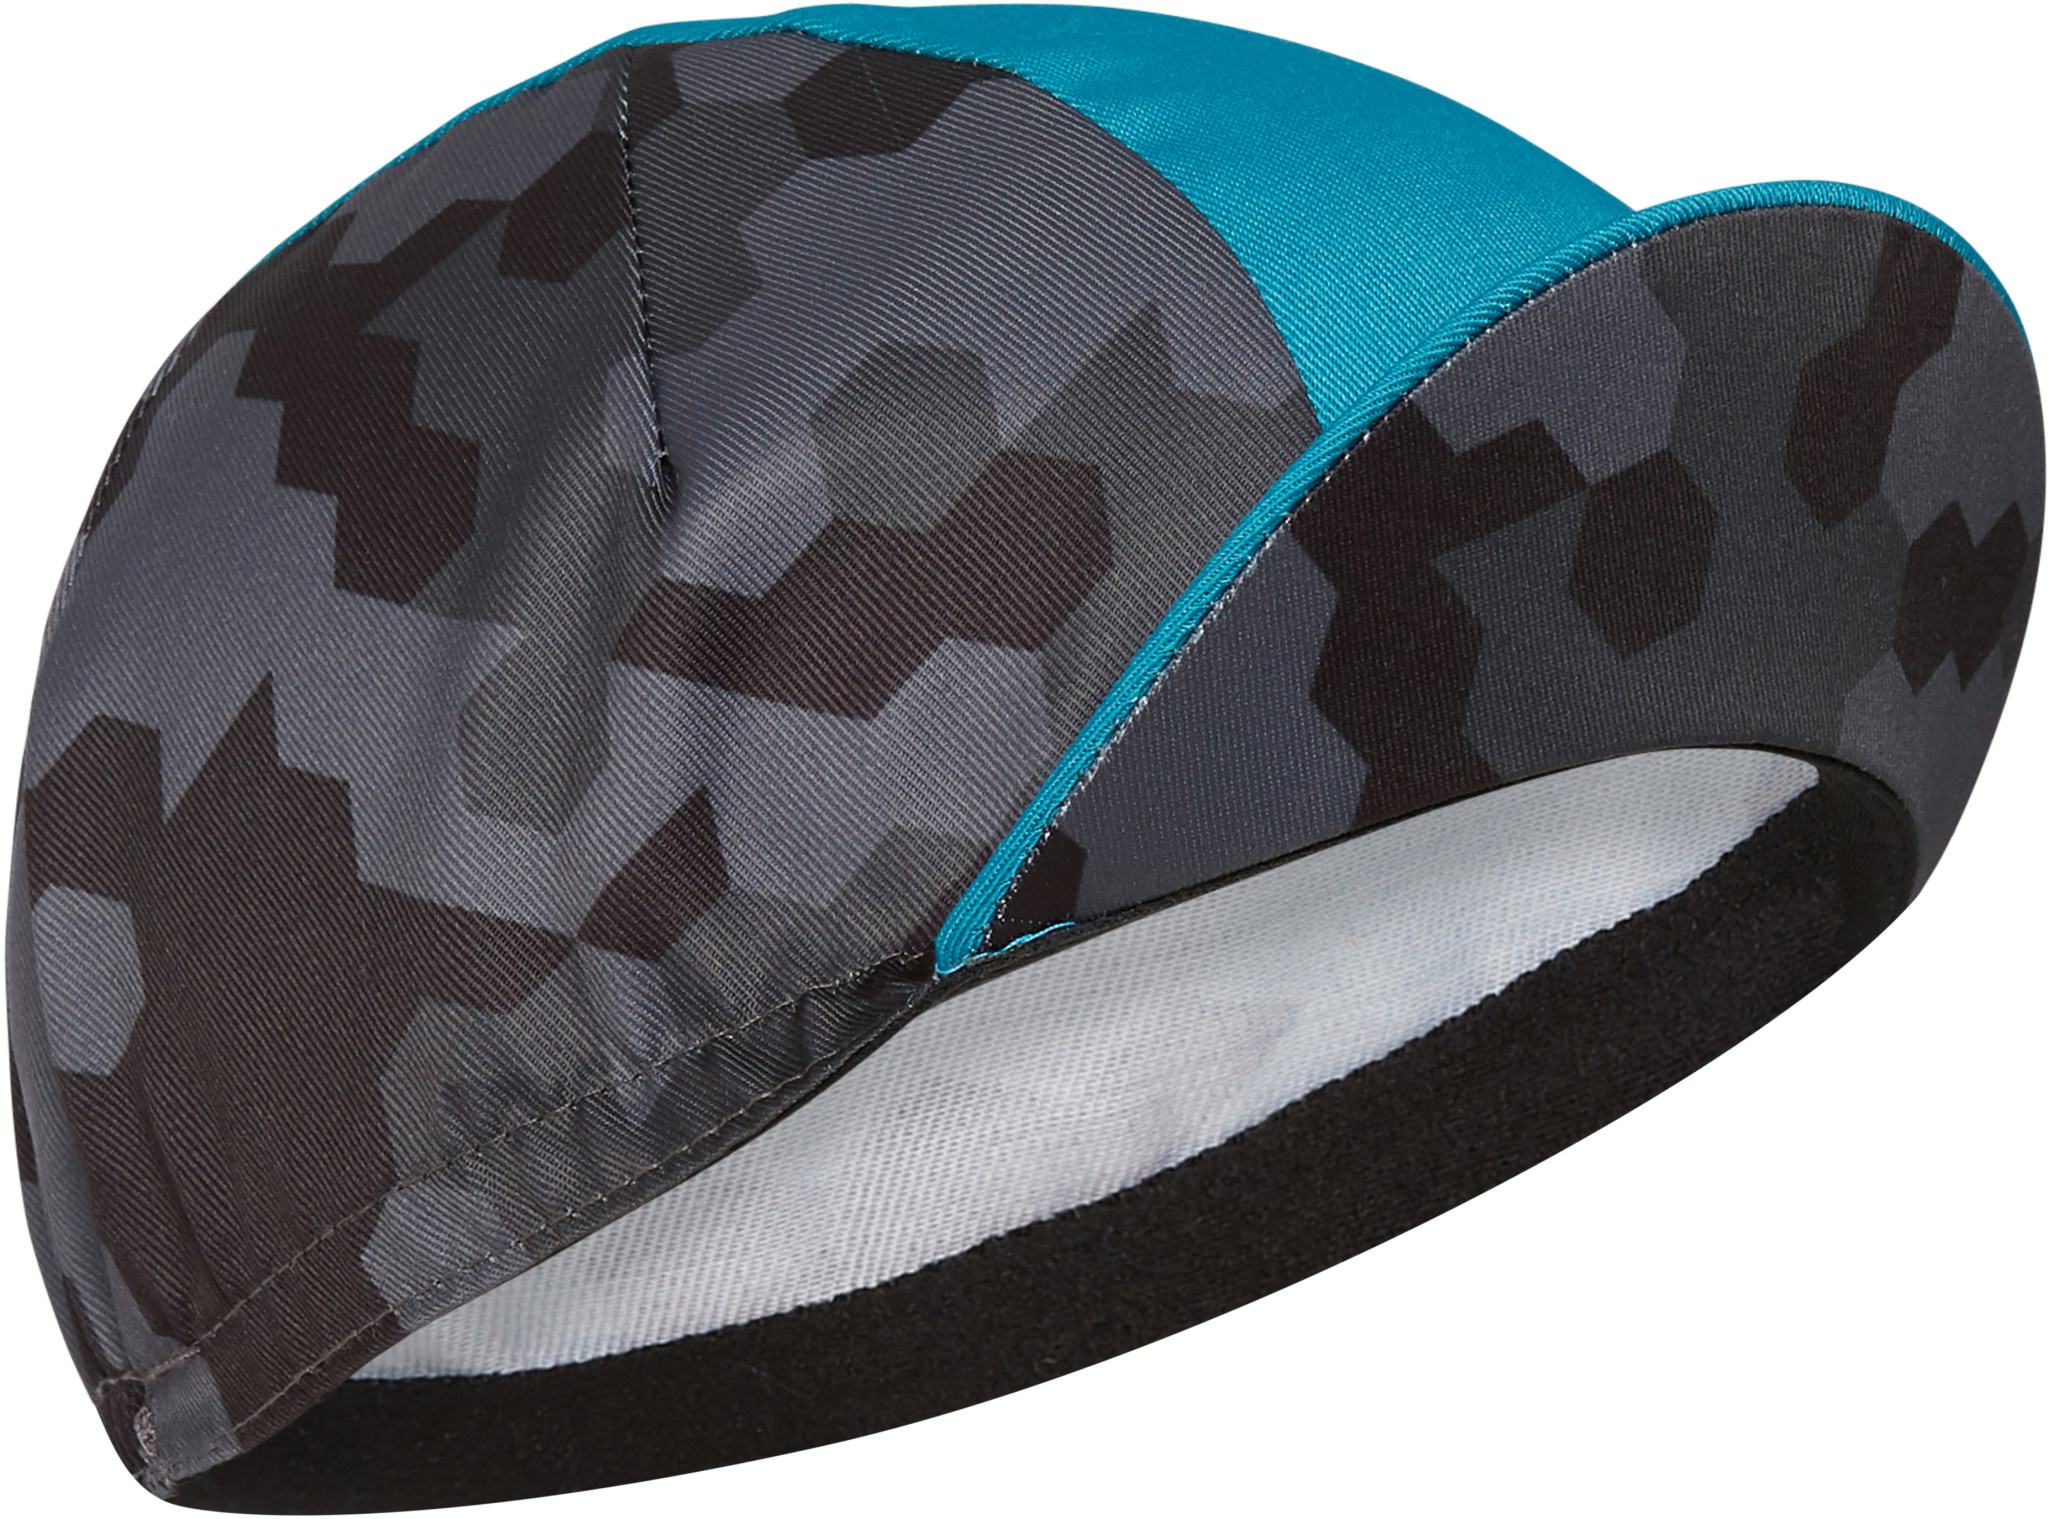 Madison Madison Sportive poly cotton cap, hex camo dark shadow / blue curaco one size Grey / Blue One Size